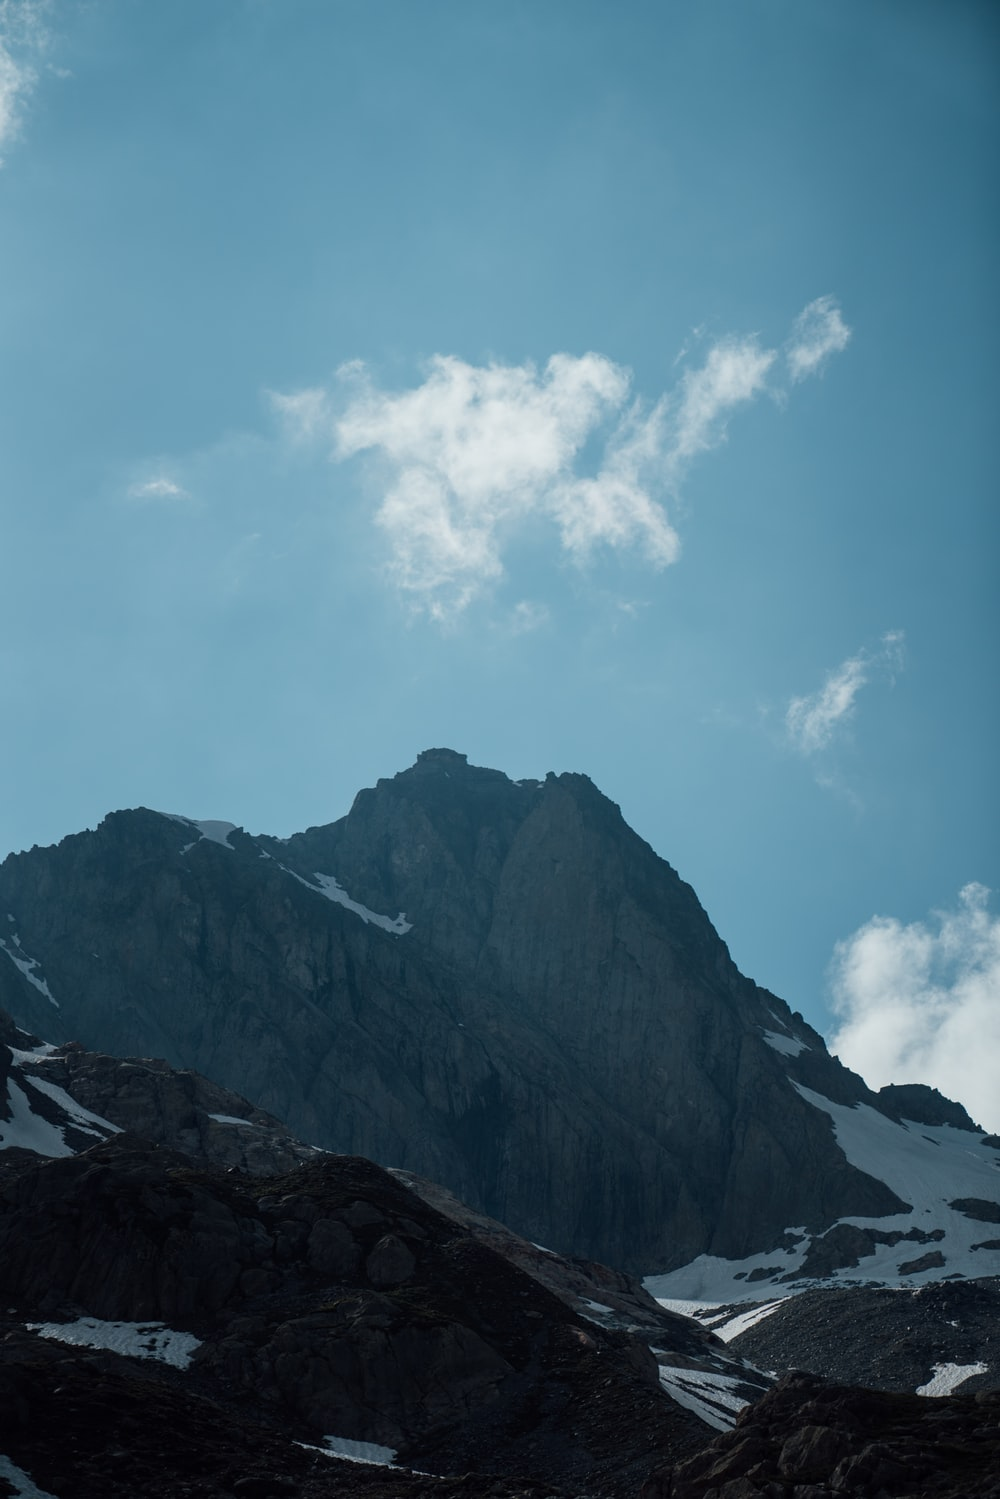 rocky mountain under white clouds and blue sky during daytime